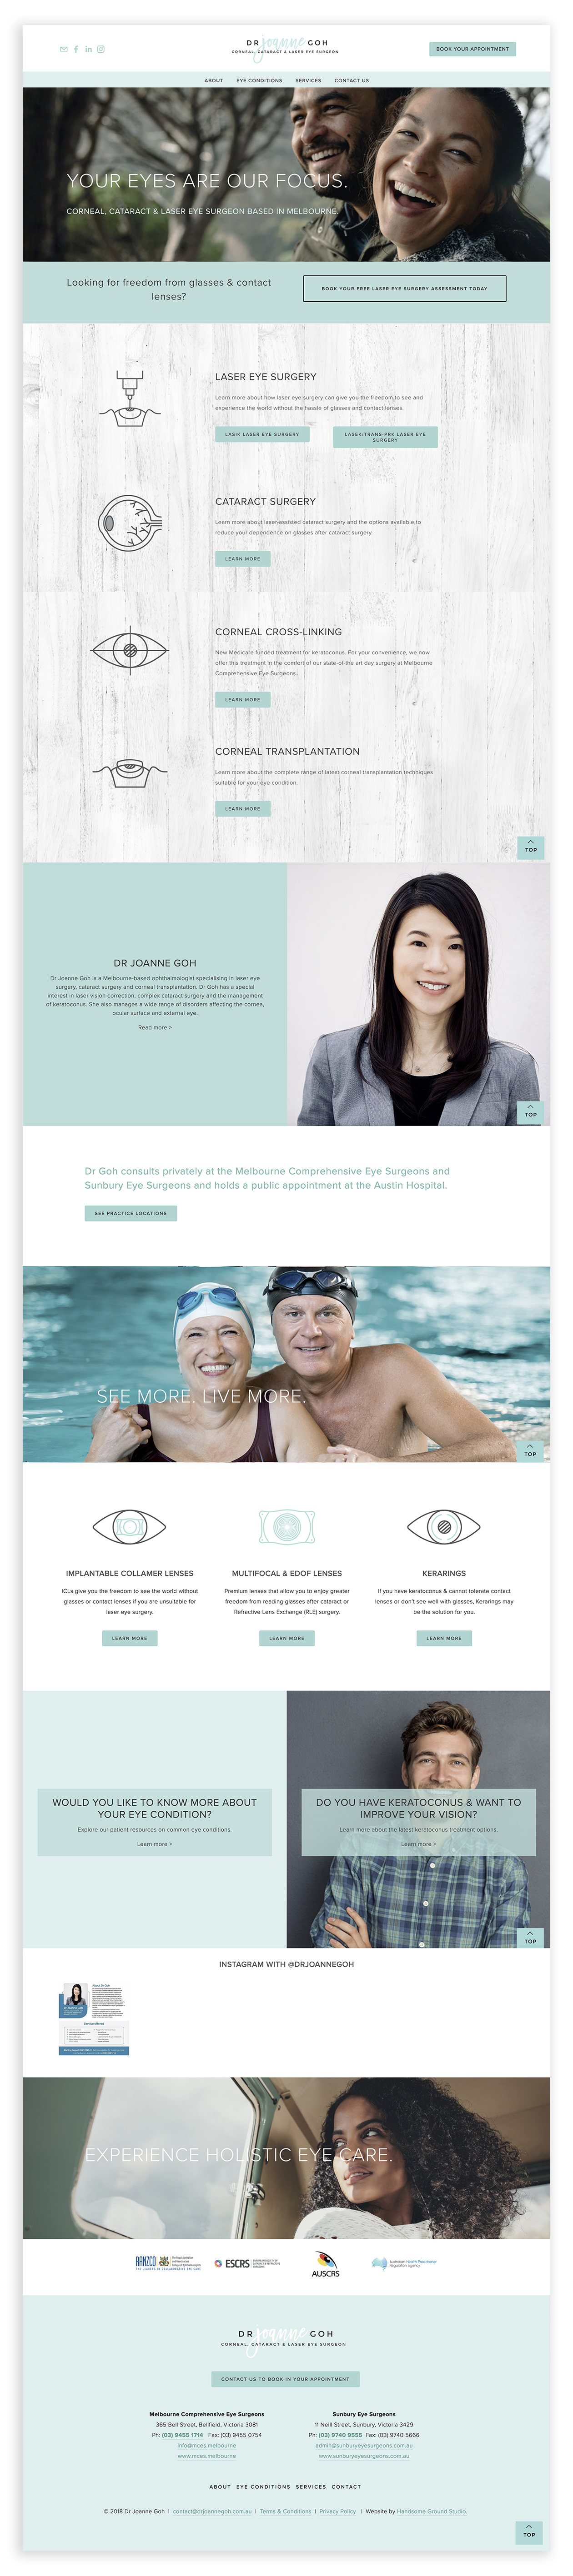 Website Design & Branding for Laser Eye Surgeon Ophthamologist Melbourne